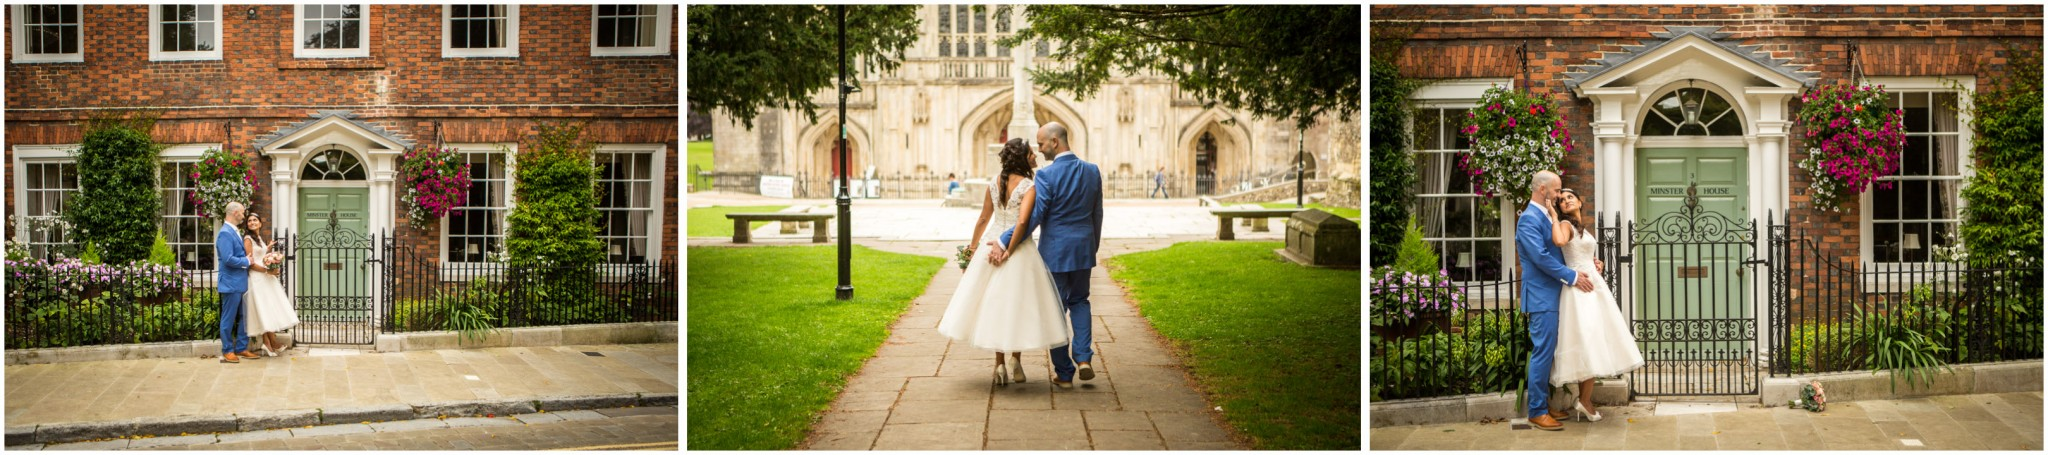 winchester-basing-room-wedding-photography-031